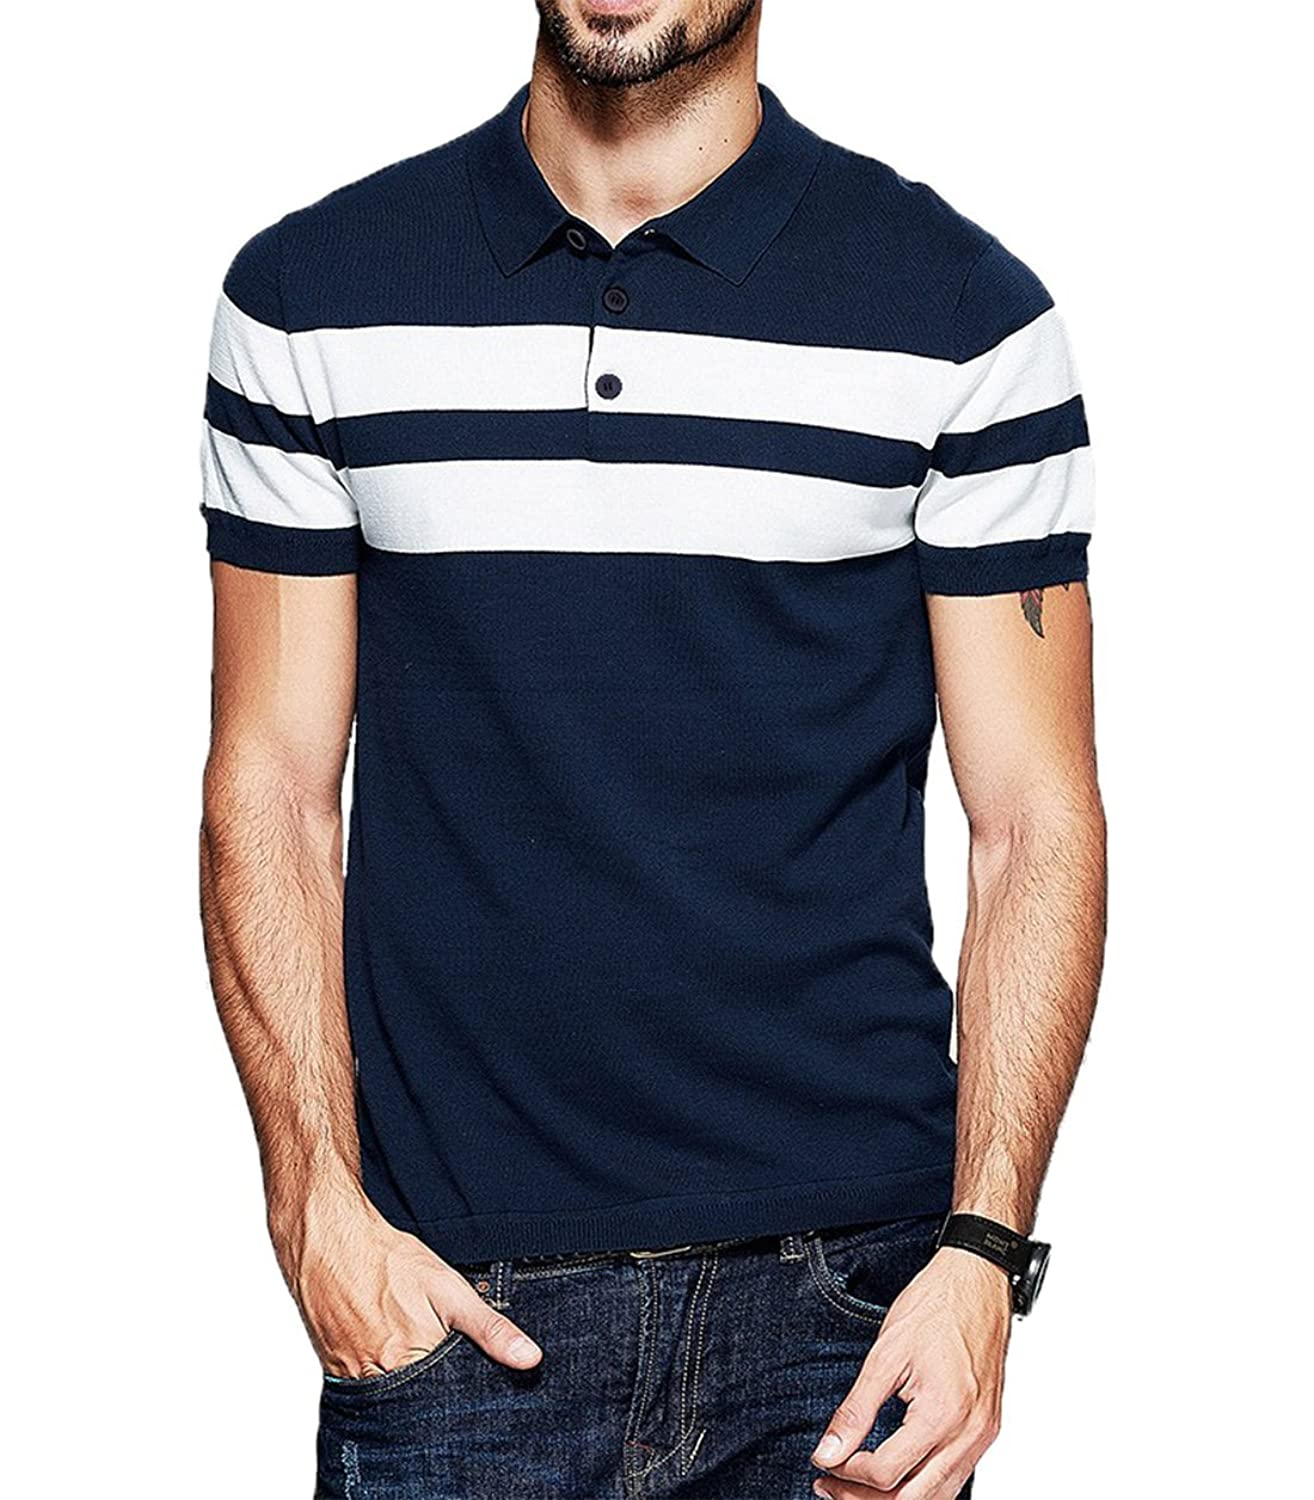 f03239b0c8 fanideaz Men's Cotton Half Sleeve Navy Blue Striped Polo T Shirts for Men